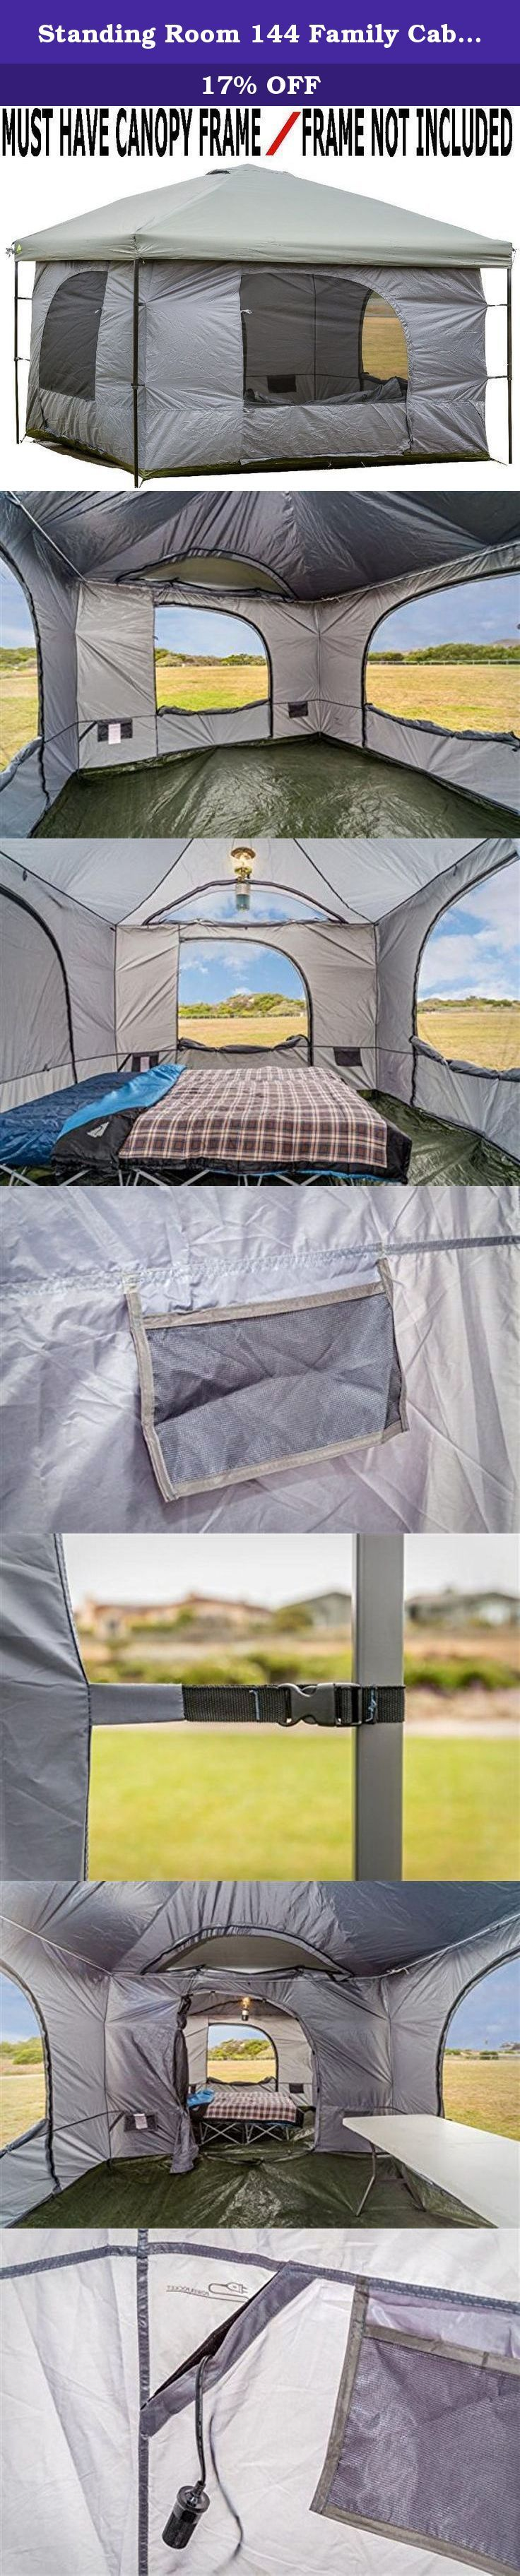 Standing Room 144 Family Cabin Camping Tent (XXL 12x12) With 8.5 feet of Head Room, 4 Big Screen Doors, Fast & Easy Set Up Cabin Tent, Family Tent, Large Tent, Canopy Frame Not Included!. MUST HAVE CANOPY FRAME! FRAME NOT INCLUDED The Standing Room 144 Hanging Family Cabin Camping Tent (XXL 12x12) is the Best Family Cabin Camping Tent and is an excellent shelter with vertical walls that anyone can stand straight up in. If you are tall and want a tent with headroom, this tent has 8.5 feet…